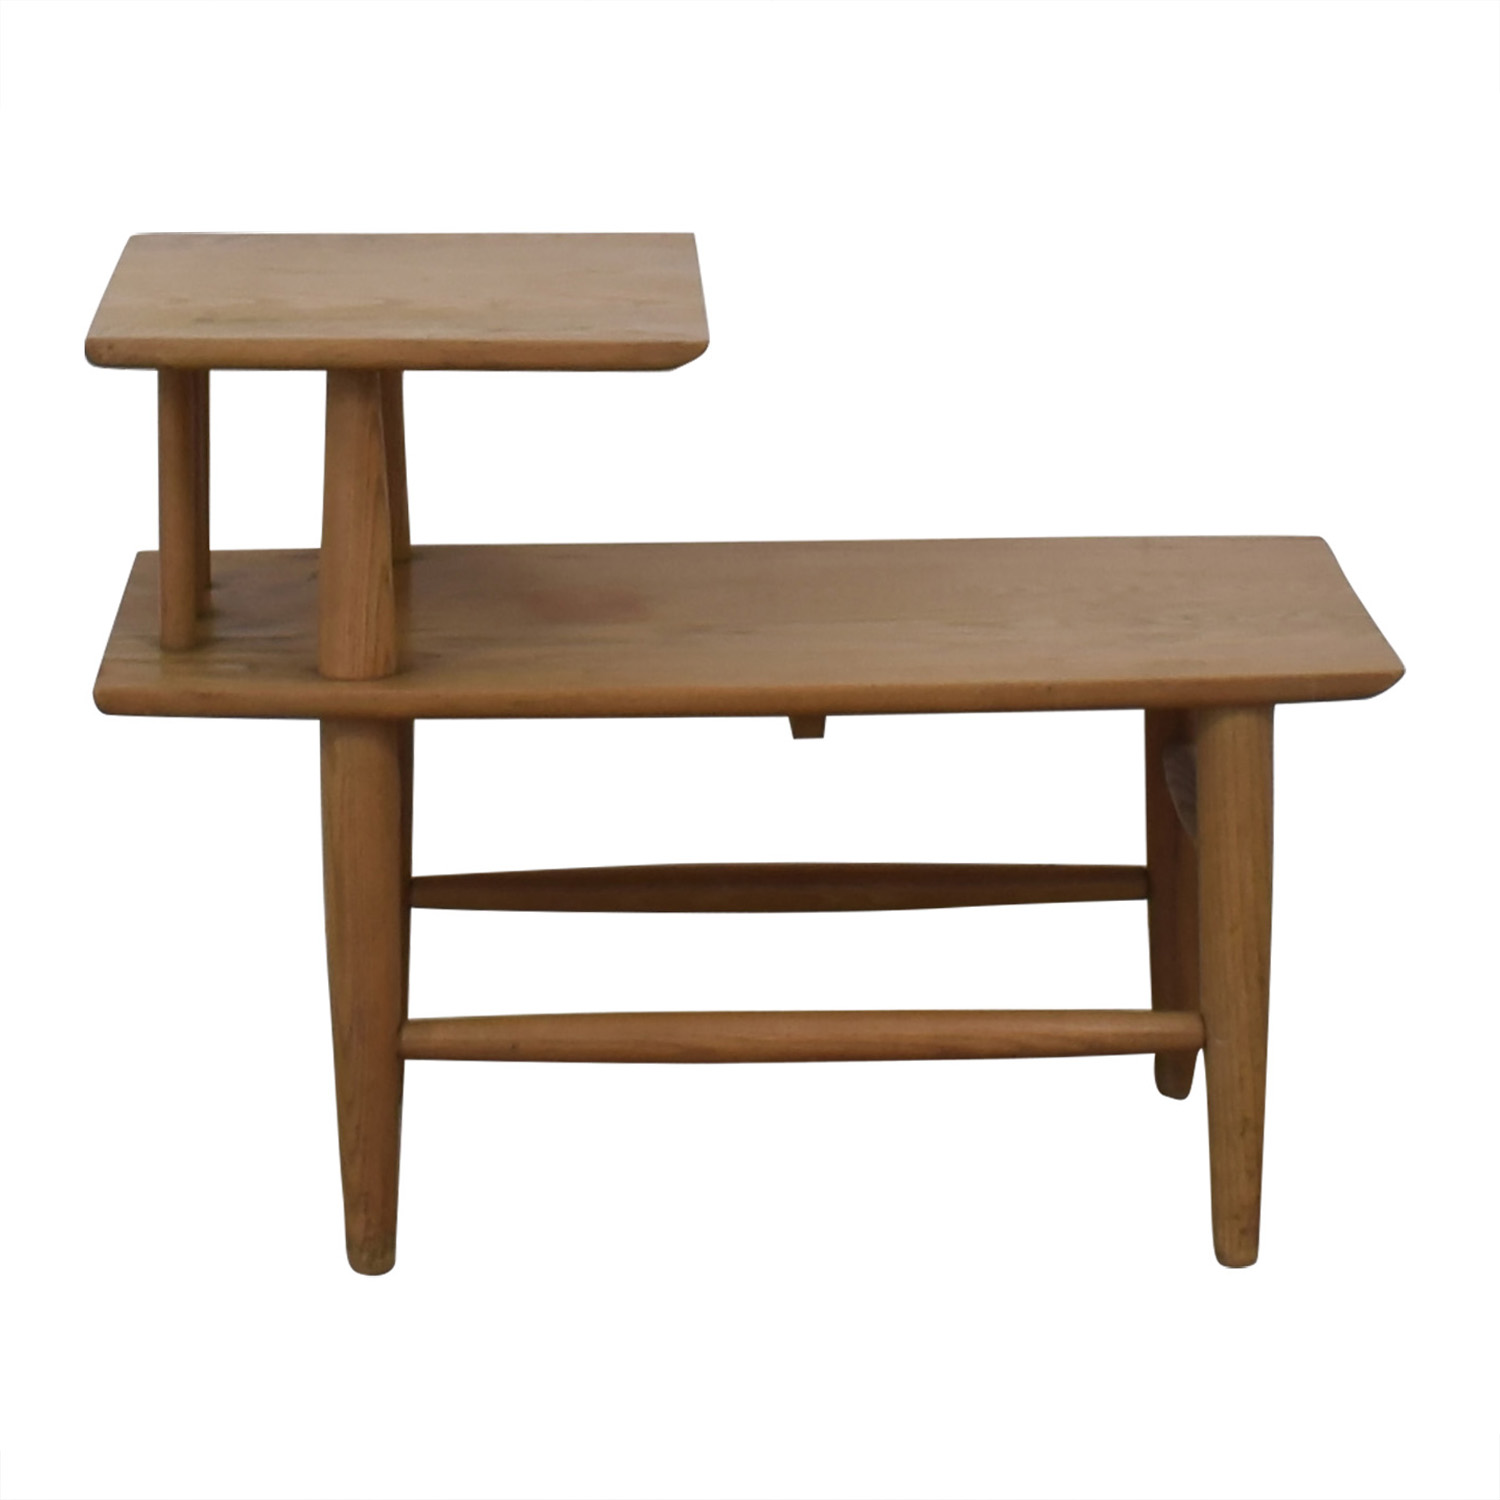 Natural Wood Two-Level Coffee table on sale